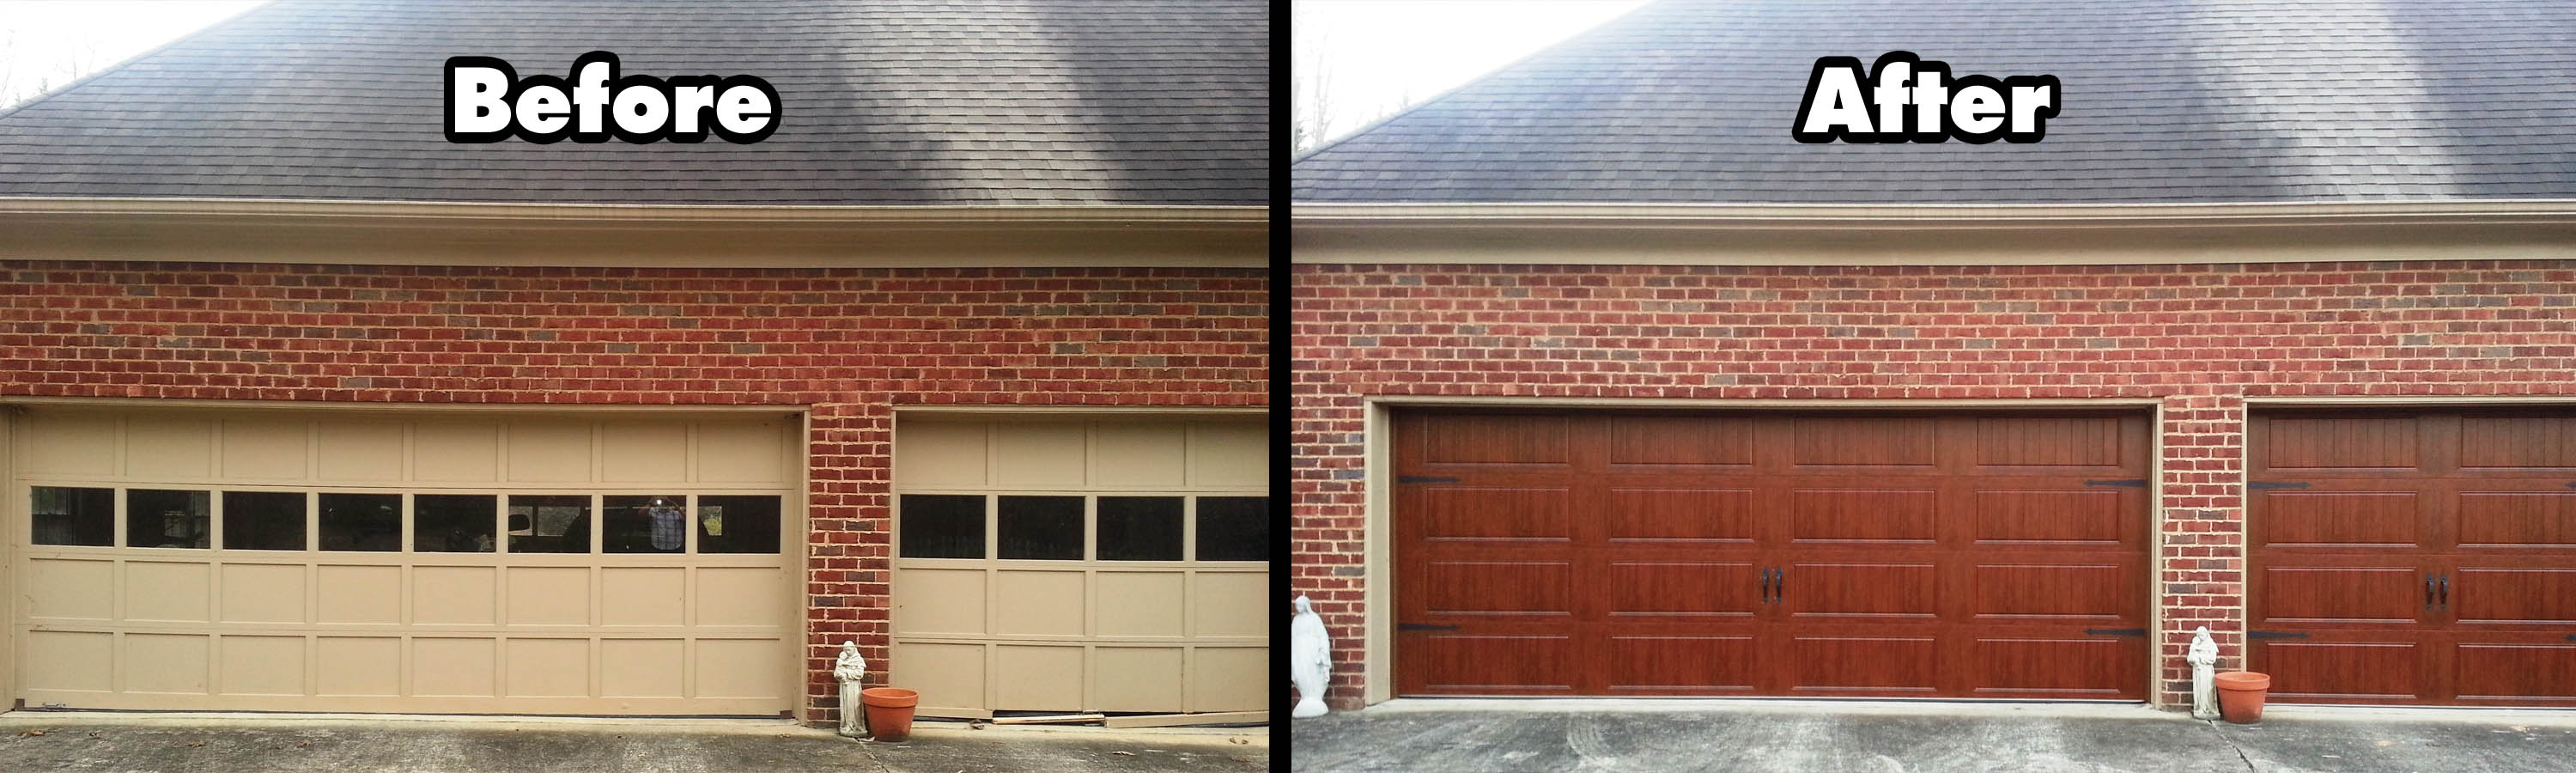 Garage doors gallery prestige garage door services serving 3 rubansaba